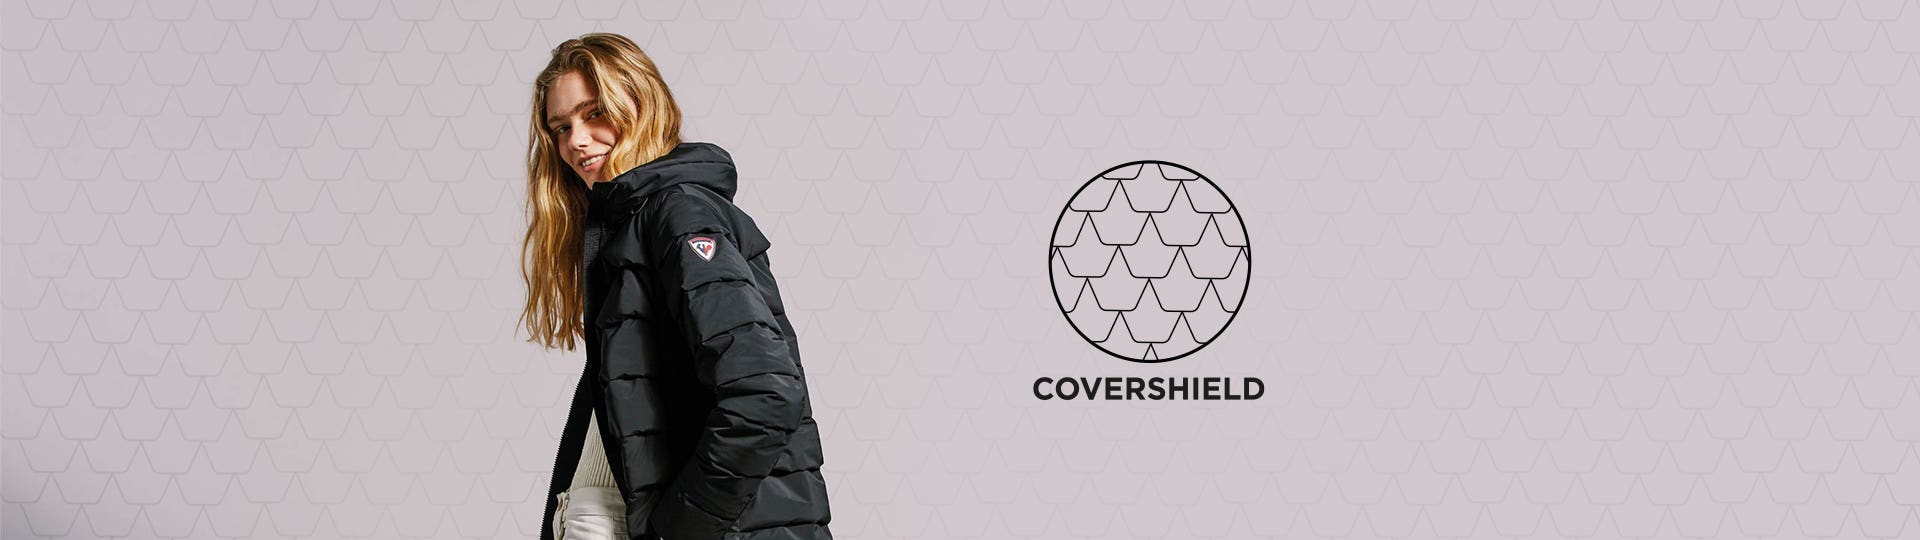 Rossignol Covershield collection